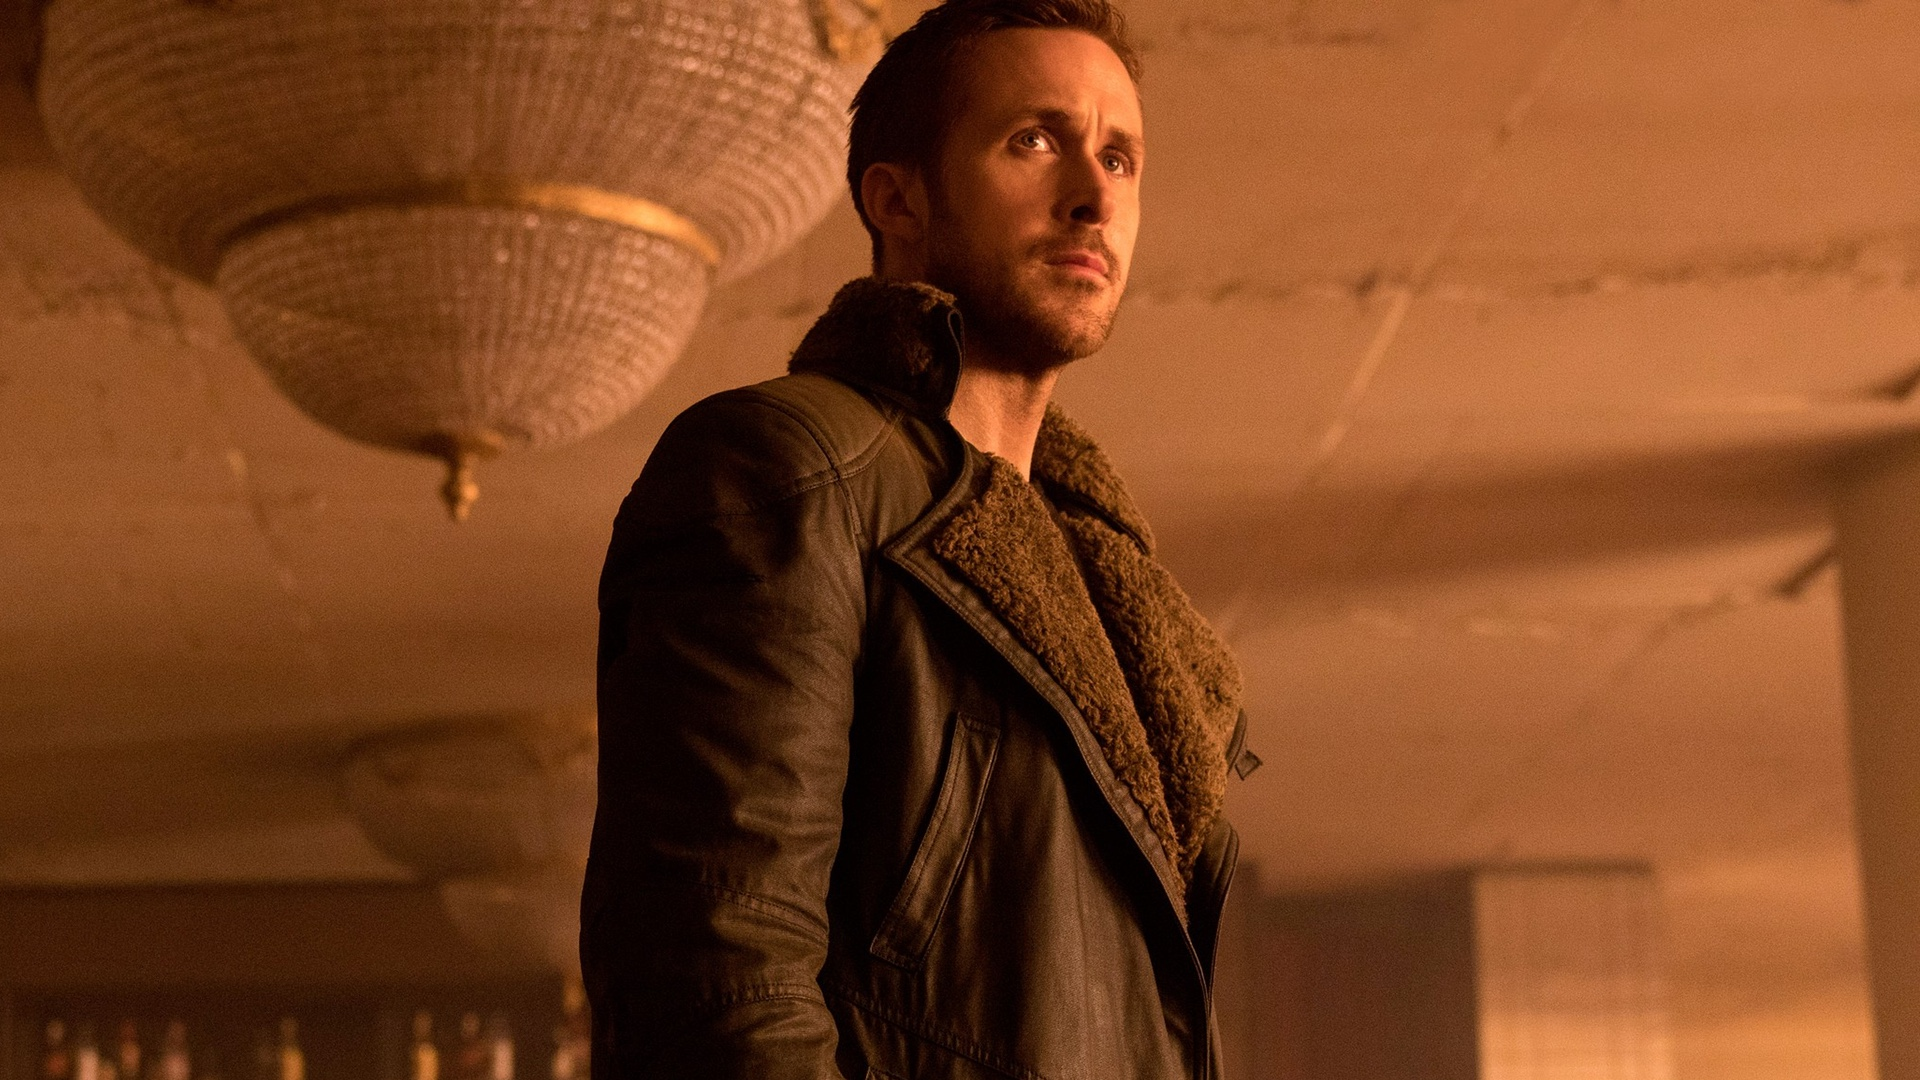 blade-runner-2049-director-denis-villeneuve-still-doesnt-understand-the-films-low-box-office-numbers-social.jpg